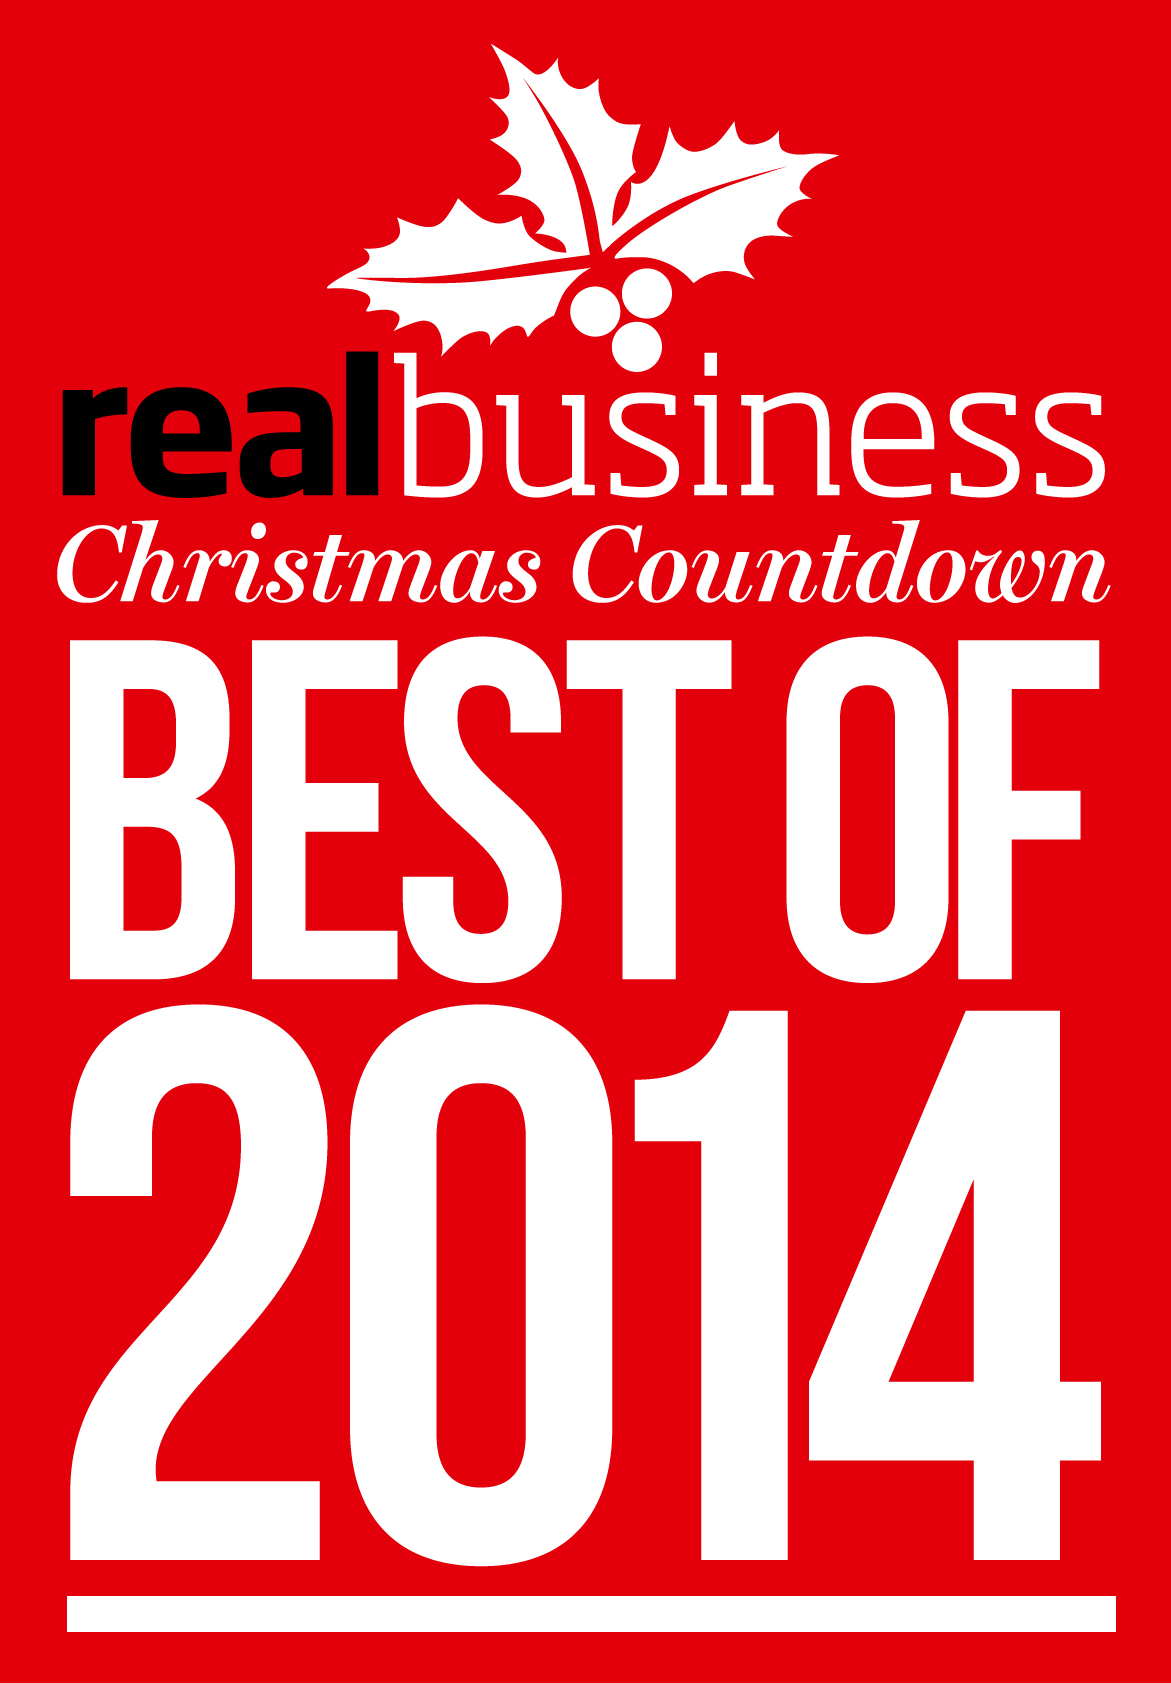 Real Business Christmas Countdown: The Best of 2014: 5 December